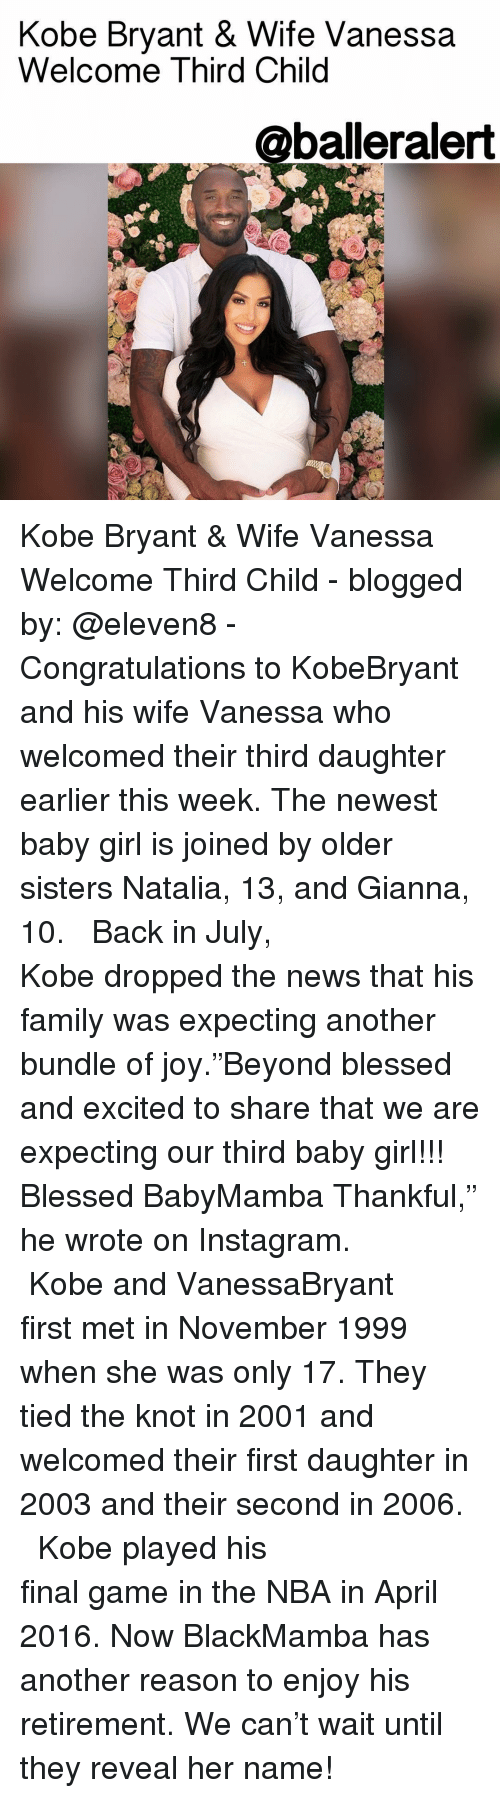 """Kobe Bryant, Memes, and Blog: Kobe Bryant & Wife Vanessa  Welcome Third Child  @balleralert Kobe Bryant & Wife Vanessa Welcome Third Child - blogged by: @eleven8 - ⠀⠀⠀⠀⠀⠀⠀⠀⠀ ⠀⠀⠀⠀⠀⠀⠀⠀⠀ Congratulations to KobeBryant and his wife Vanessa who welcomed their third daughter earlier this week. The newest baby girl is joined by older sisters Natalia, 13, and Gianna, 10. ⠀⠀⠀⠀⠀⠀⠀⠀⠀ ⠀⠀⠀⠀⠀⠀⠀⠀⠀ Back in July, Kobe dropped the news that his family was expecting another bundle of joy.""""Beyond blessed and excited to share that we are expecting our third baby girl!!! Blessed BabyMamba Thankful,"""" he wrote on Instagram. ⠀⠀⠀⠀⠀⠀⠀⠀⠀ ⠀⠀⠀⠀⠀⠀⠀⠀⠀ Kobe and VanessaBryant first met in November 1999 when she was only 17. They tied the knot in 2001 and welcomed their first daughter in 2003 and their second in 2006. ⠀⠀⠀⠀⠀⠀⠀⠀⠀ ⠀⠀⠀⠀⠀⠀⠀⠀⠀ Kobe played his final game in the NBA in April 2016. Now BlackMamba has another reason to enjoy his retirement. We can't wait until they reveal her name!"""